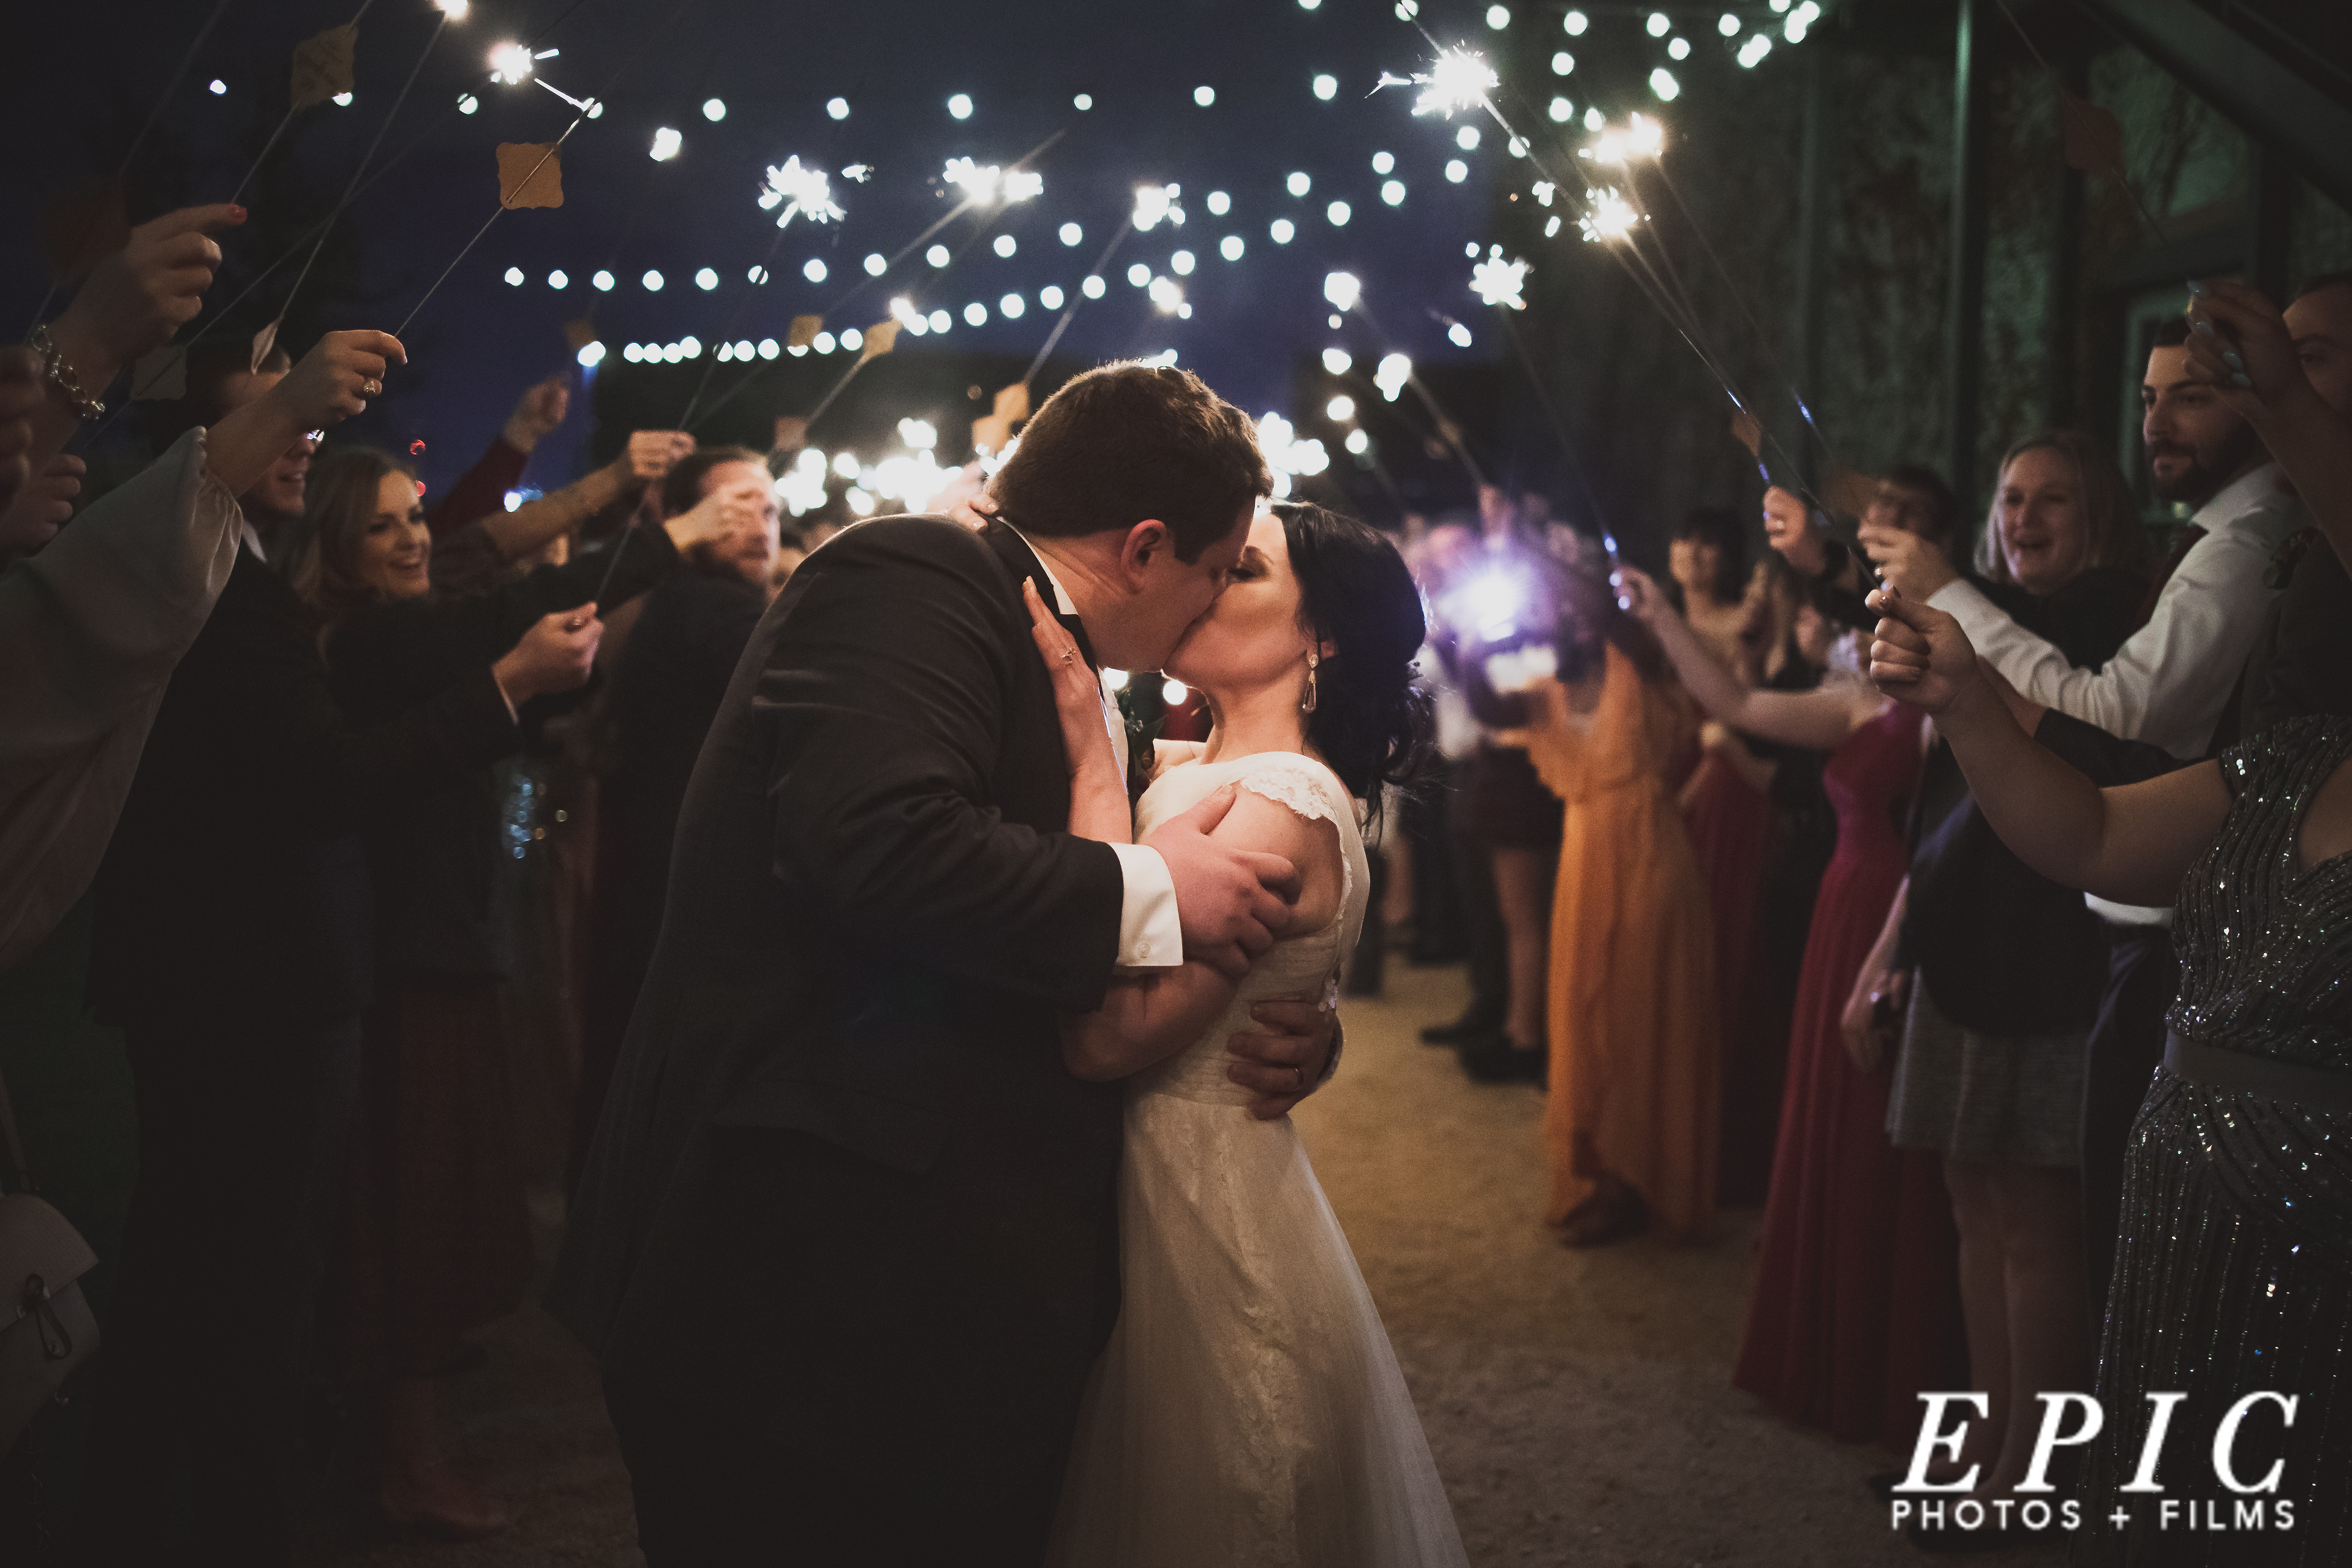 Sparkler grand exit for the wedding day at The Brik Venue in Ft. Worth Texas